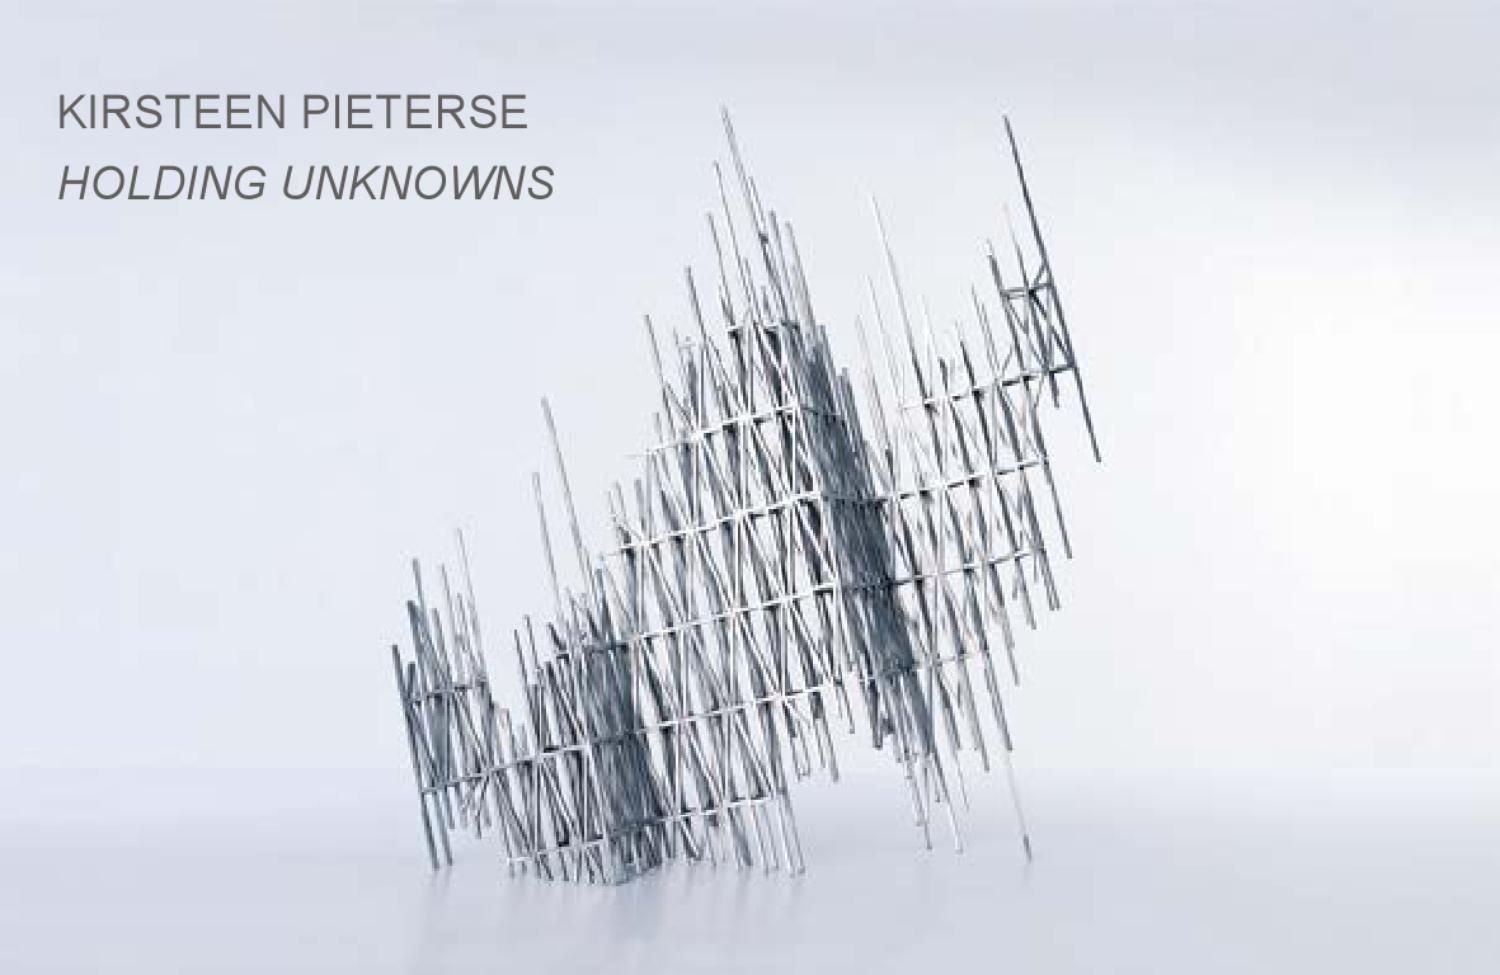 KIRSTEEN PIETERSE | HOLDING UNKNOWNS | ONLINE CATALOGUE